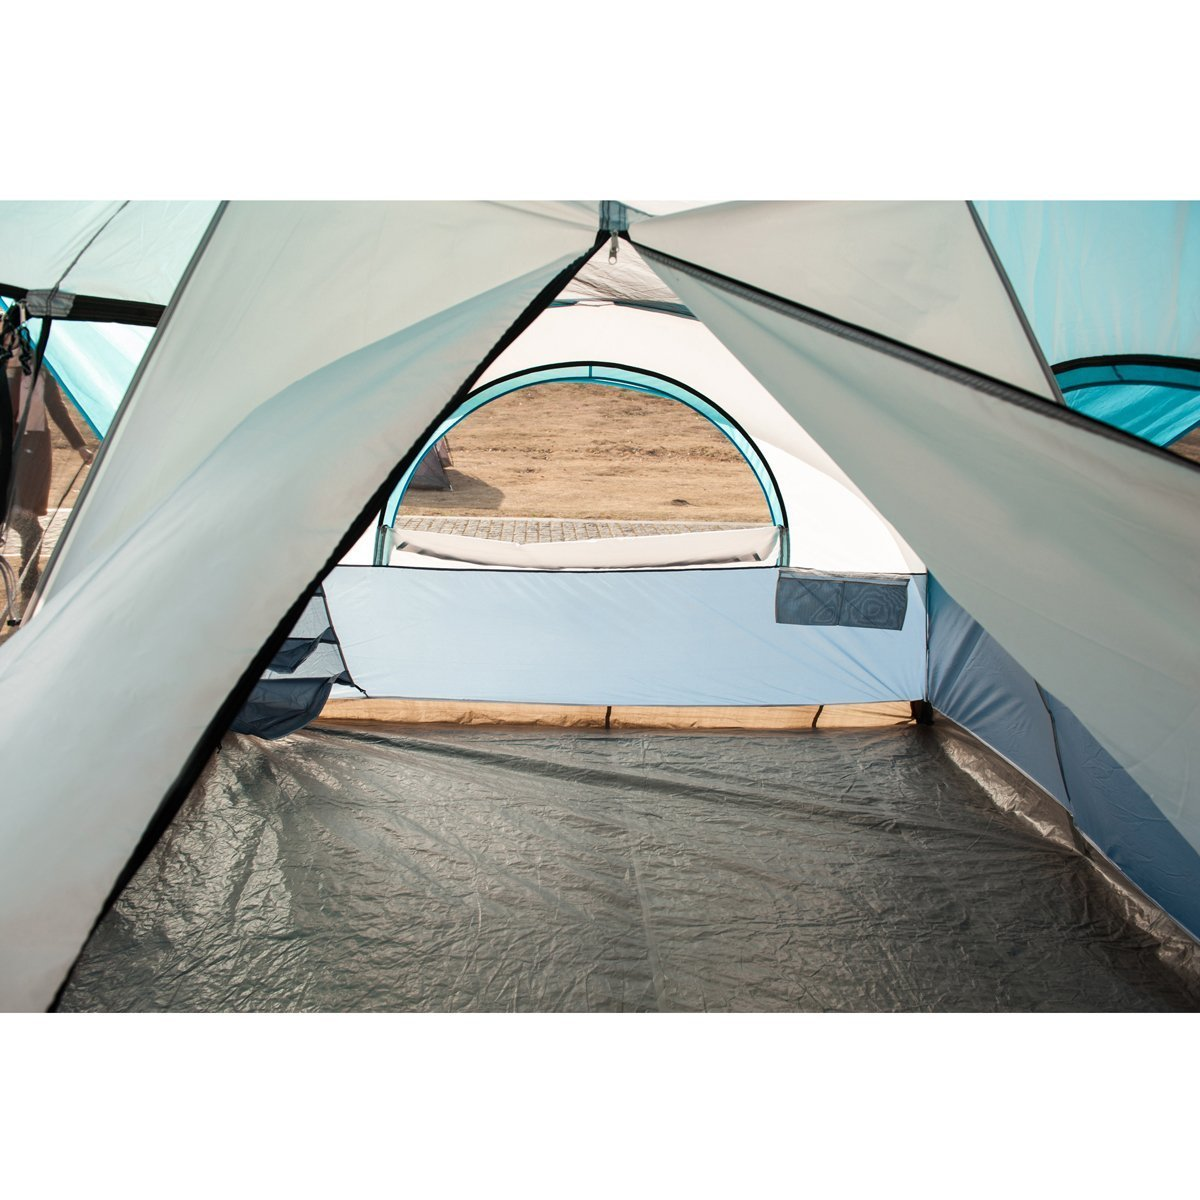 Timber Ridge Large Family Tent for Camping with Carry Bag, 2 Rooms by Timber Ridge (Image #5)